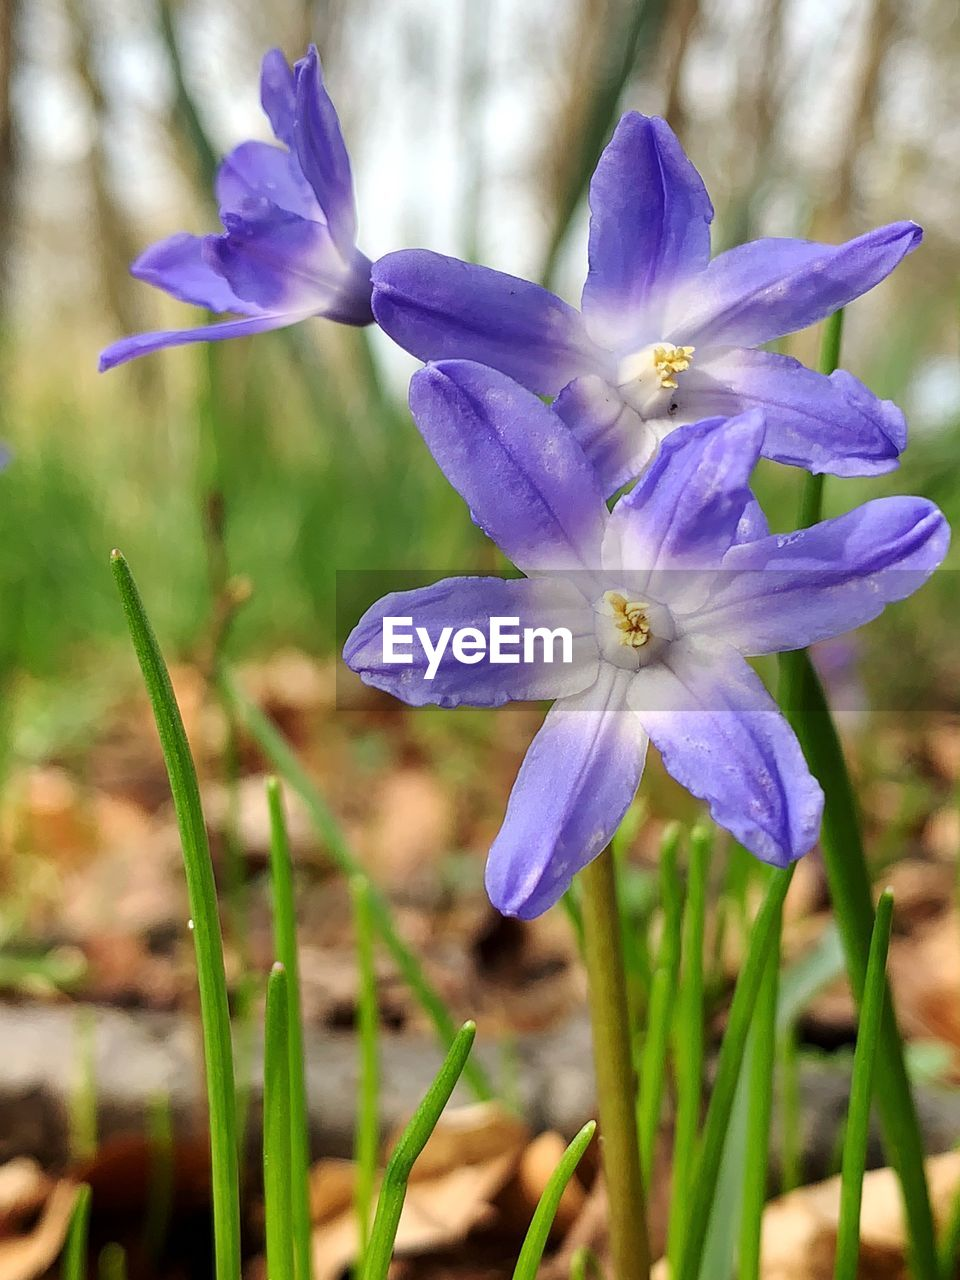 flowering plant, flower, plant, freshness, vulnerability, fragility, petal, beauty in nature, growth, purple, flower head, close-up, inflorescence, focus on foreground, nature, no people, day, botany, land, field, outdoors, crocus